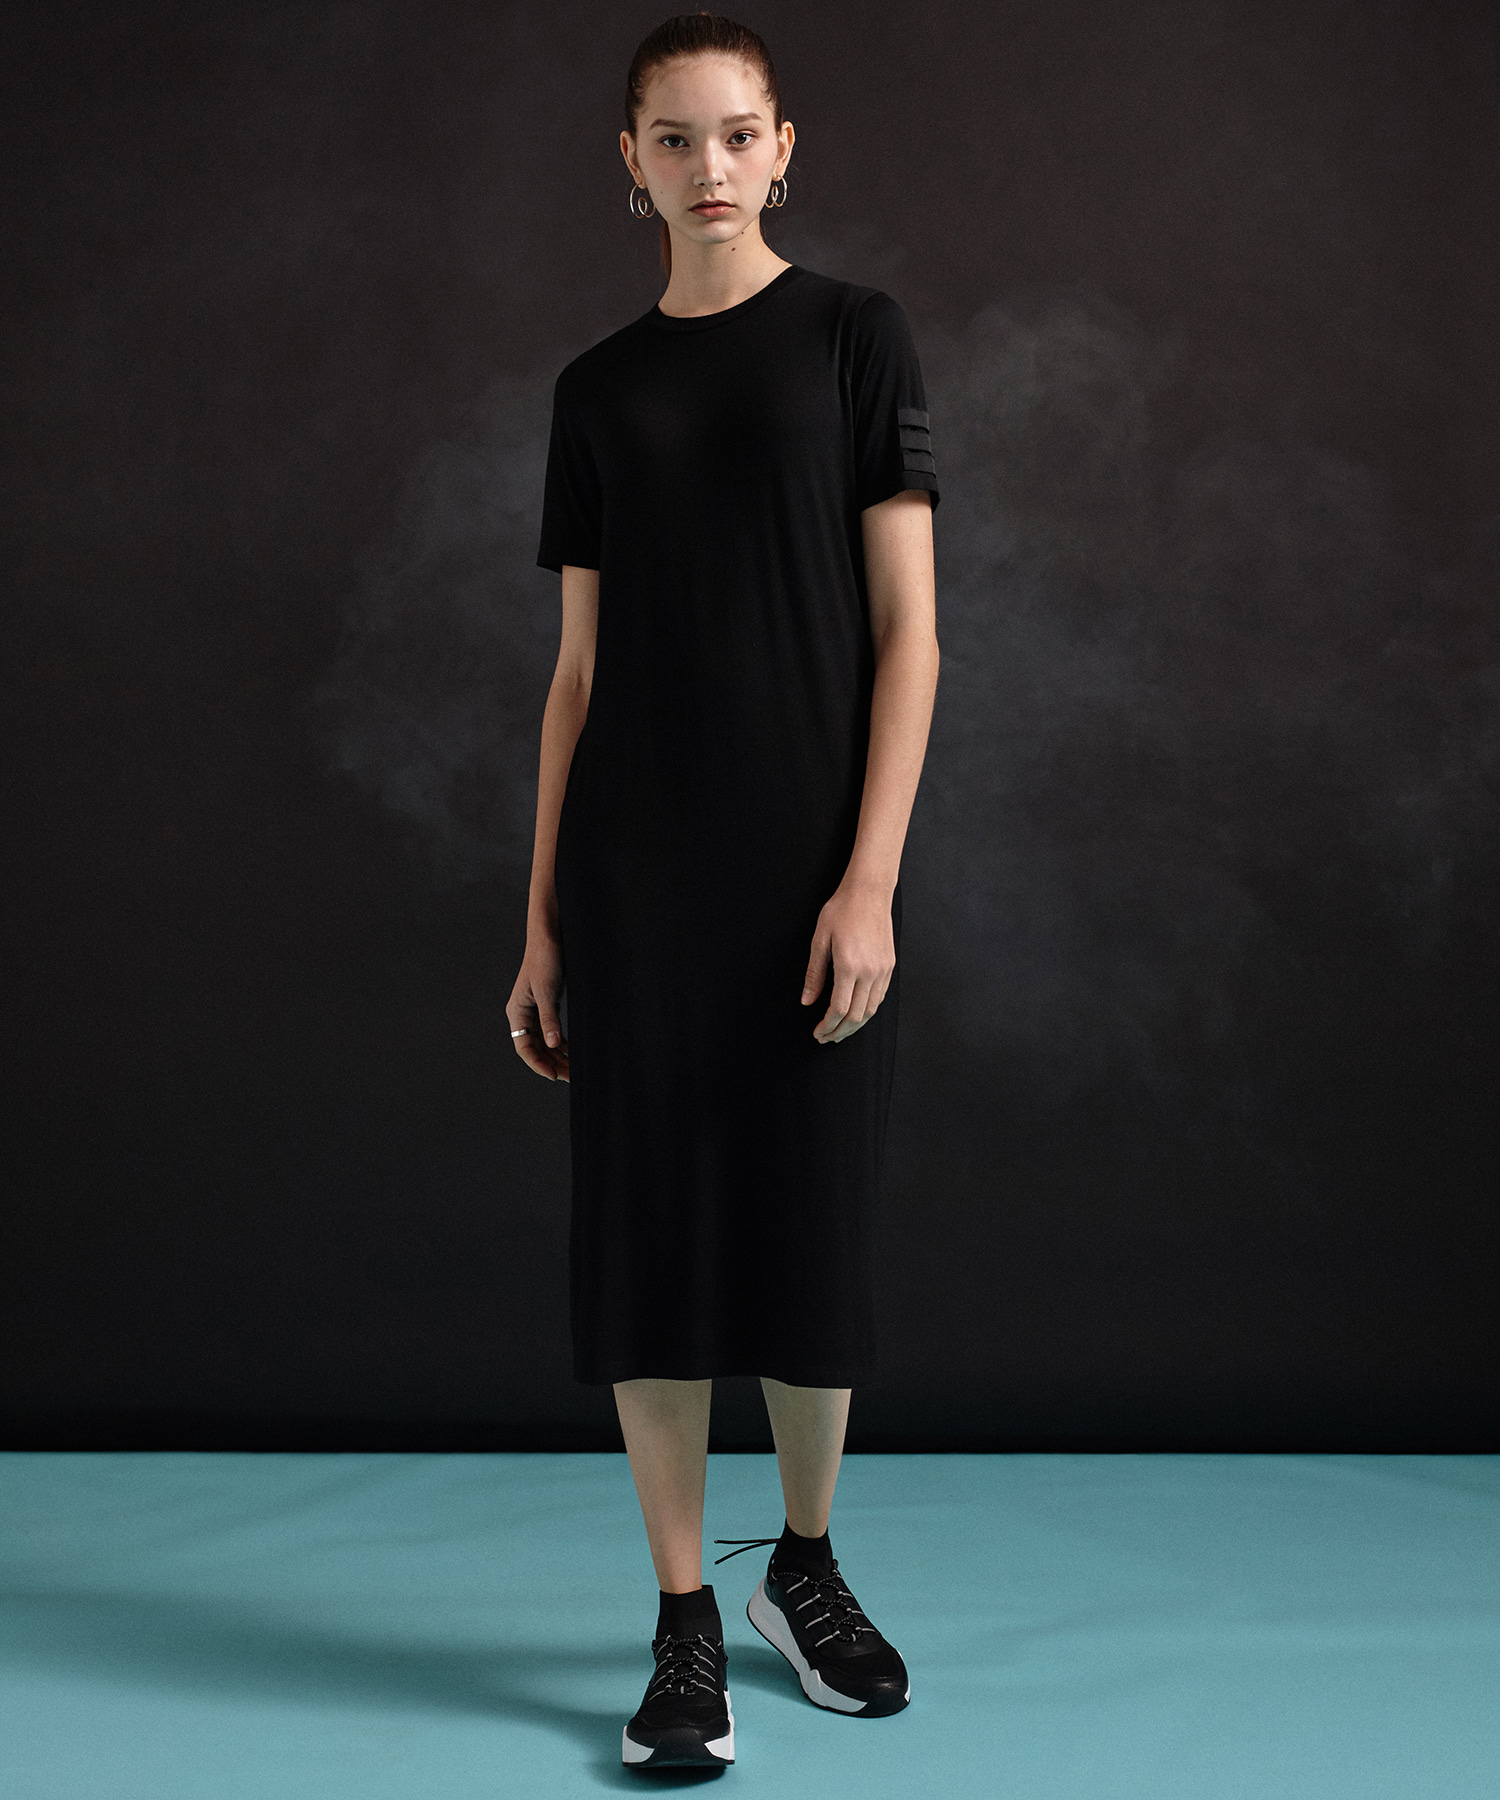 [DGNAK12,illi] Sleeve Label One-Piece (BK)